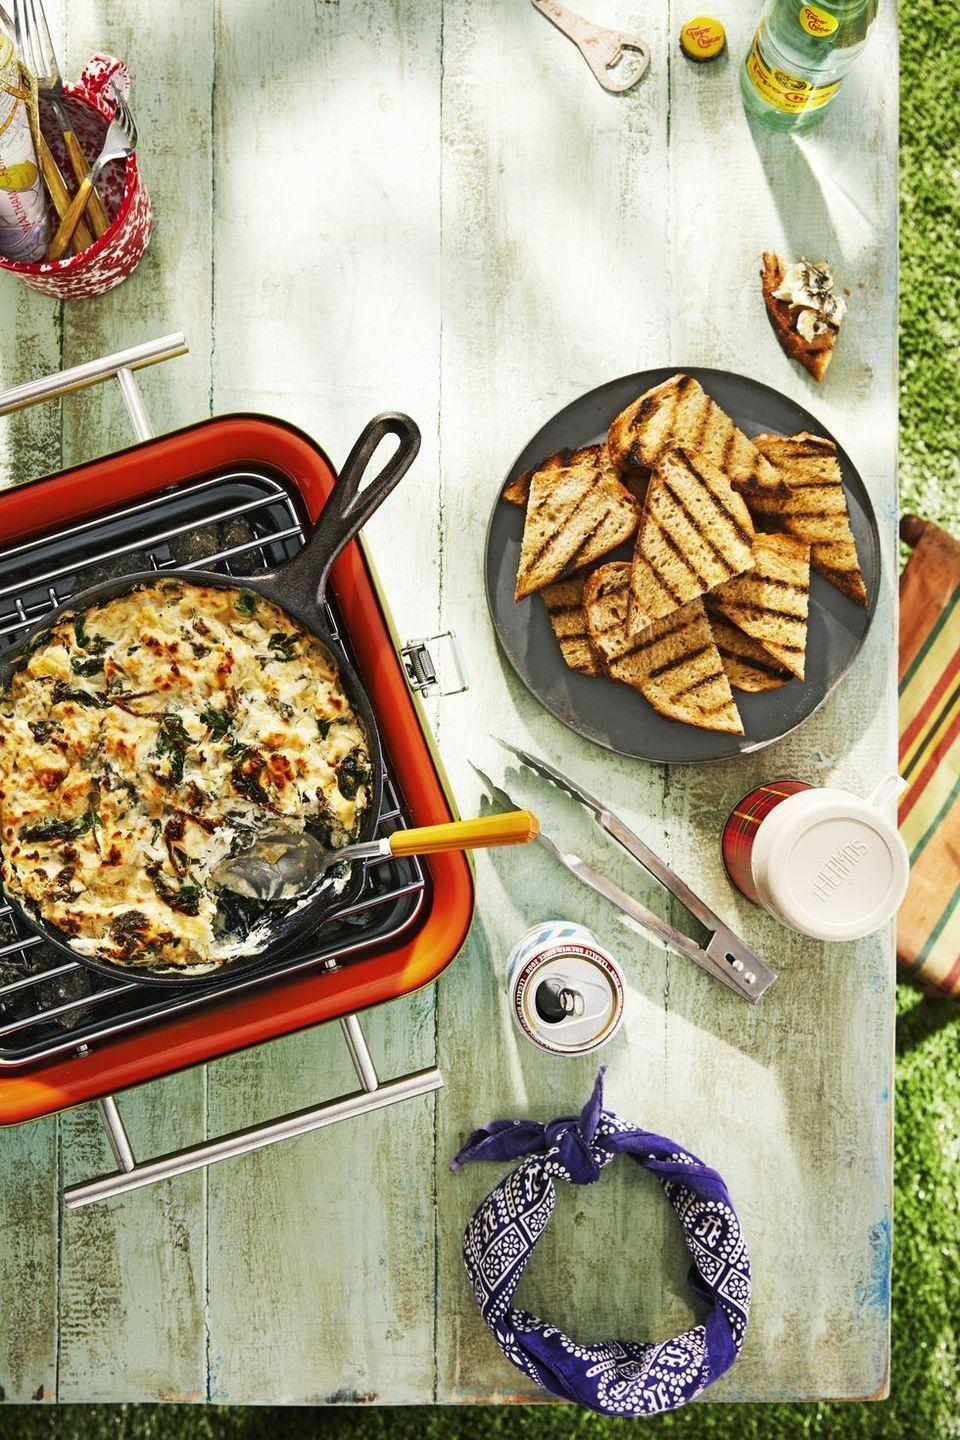 "<p>A few minutes on the <a href=""https://www.goodhousekeeping.com/appliances/outdoor-grill-reviews/g2320/best-outdoor-grills-0611/"" rel=""nofollow noopener"" target=""_blank"" data-ylk=""slk:grill"" class=""link rapid-noclick-resp"">grill</a> turns a regular piece of bread into a party-worthy dipper.</p><p><a href=""https://www.countryliving.com/food-drinks/a28071095/skillet-spinach-artichoke-dip-with-fire-roasted-bread-recipe/"" rel=""nofollow noopener"" target=""_blank"" data-ylk=""slk:Get the recipe from Country Living »"" class=""link rapid-noclick-resp"">Get the recipe from Country Living »</a></p>"